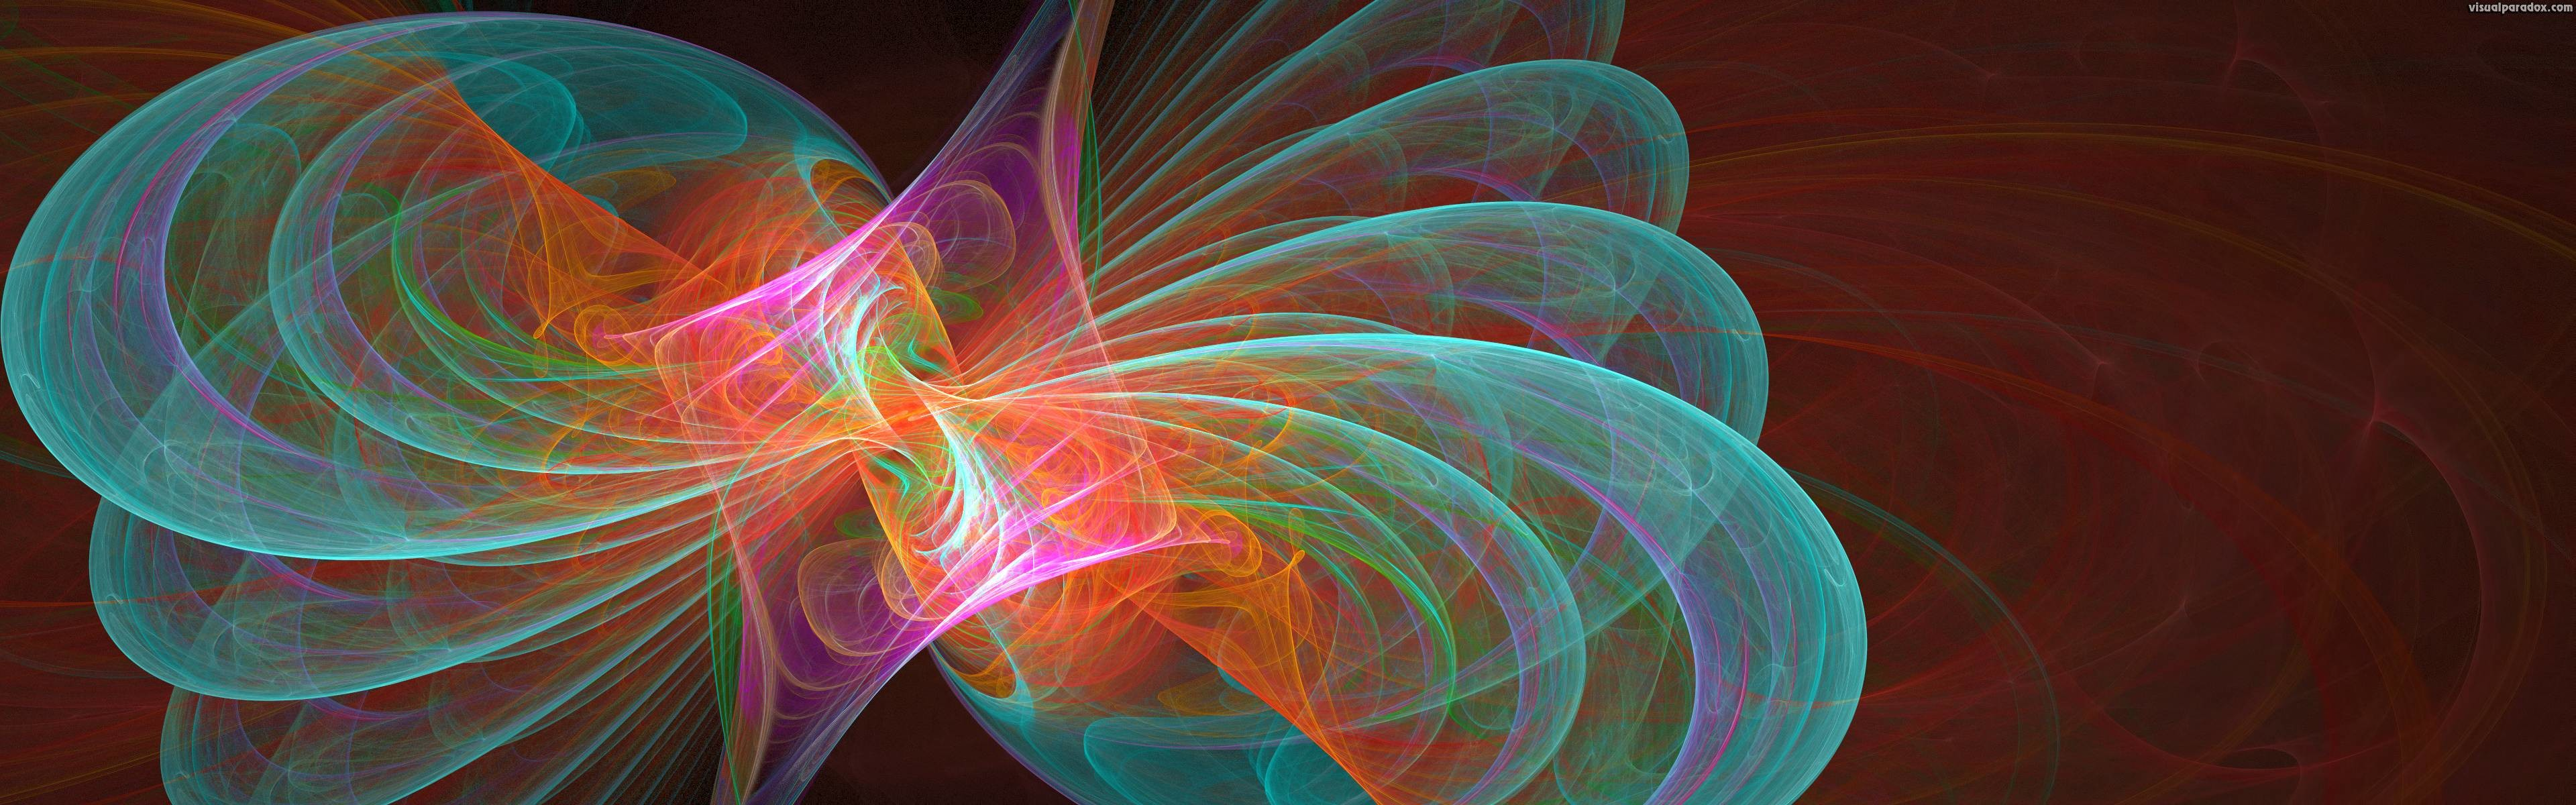 3840x1200 Visual Paradox Free 3D Wallpaper 'Holographic Butterfly' 3840x1200 .